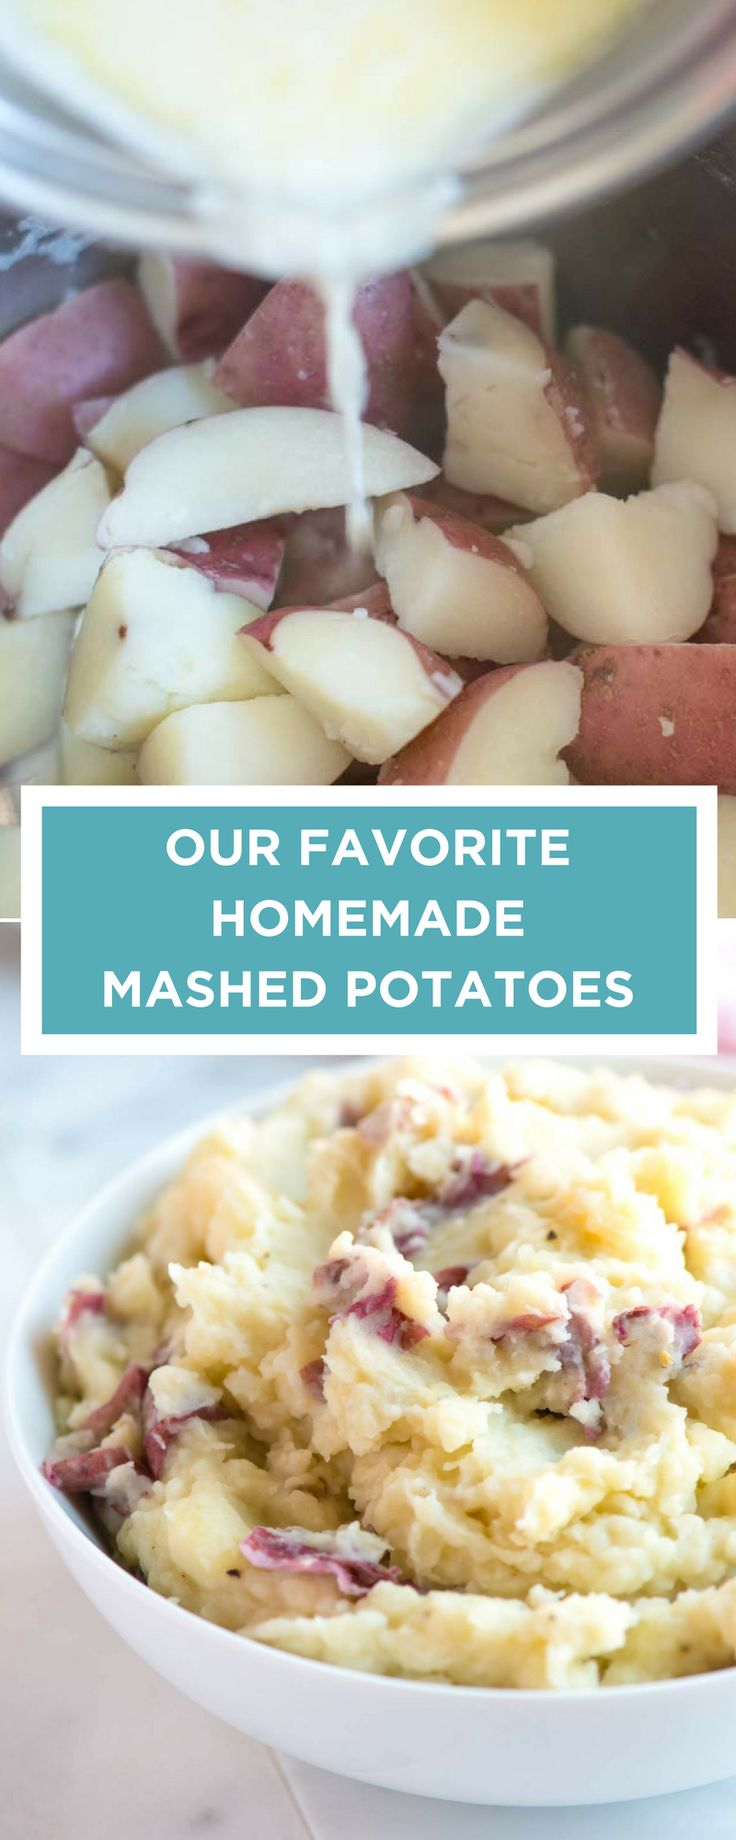 This is our favorite homemade mashed potatoes recipe (skin-on or peeled). Learn which potatoes to use and how to cook them so that they are creamy and delicious.